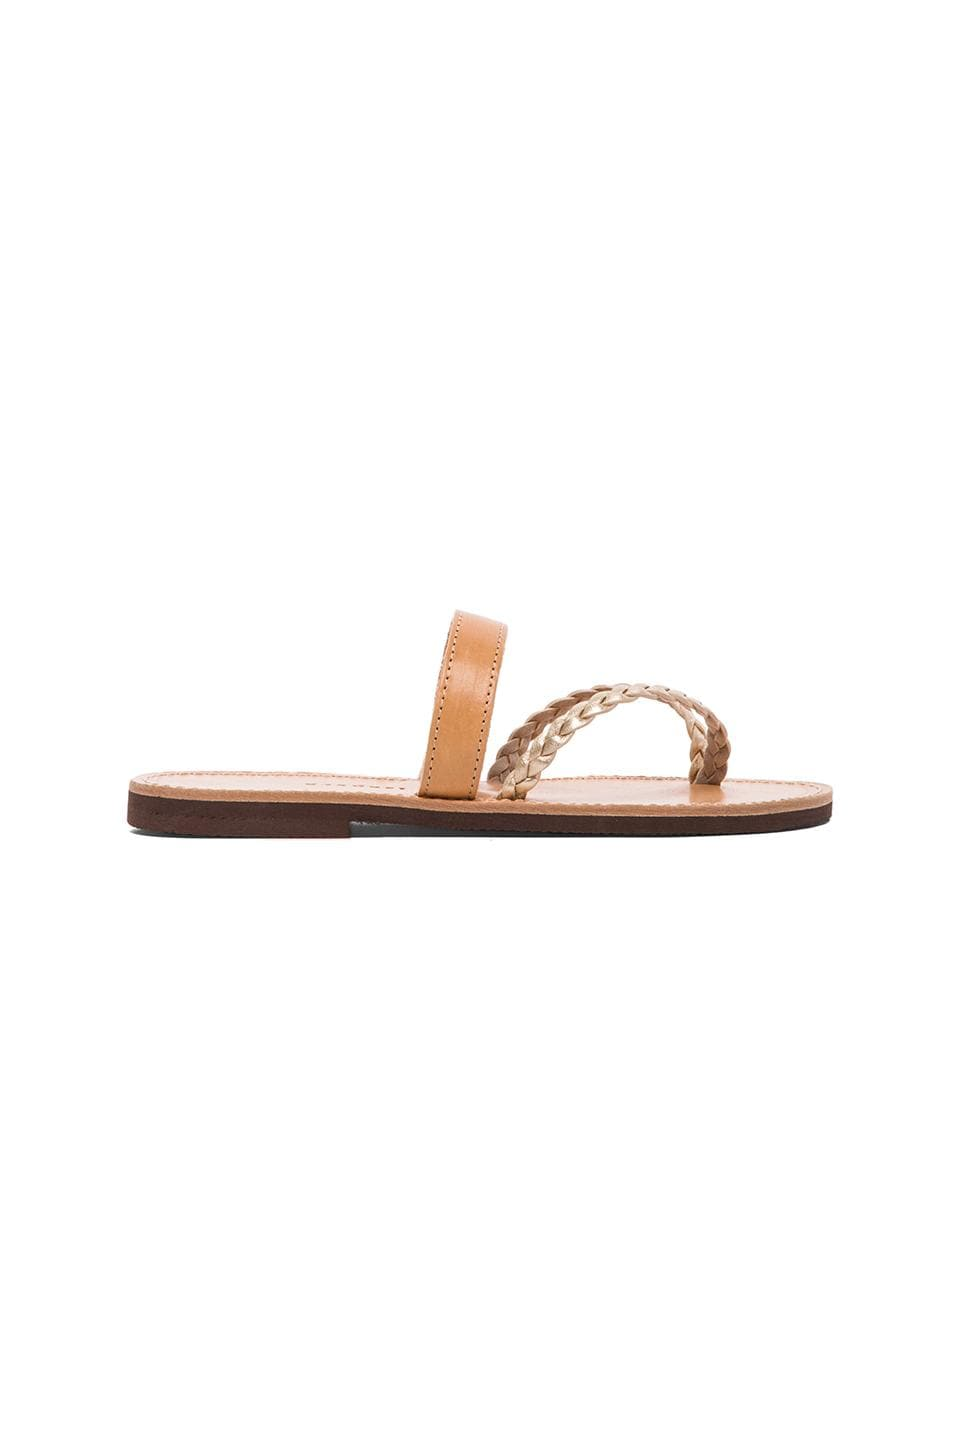 isapera Arocaria Sandal in Natural